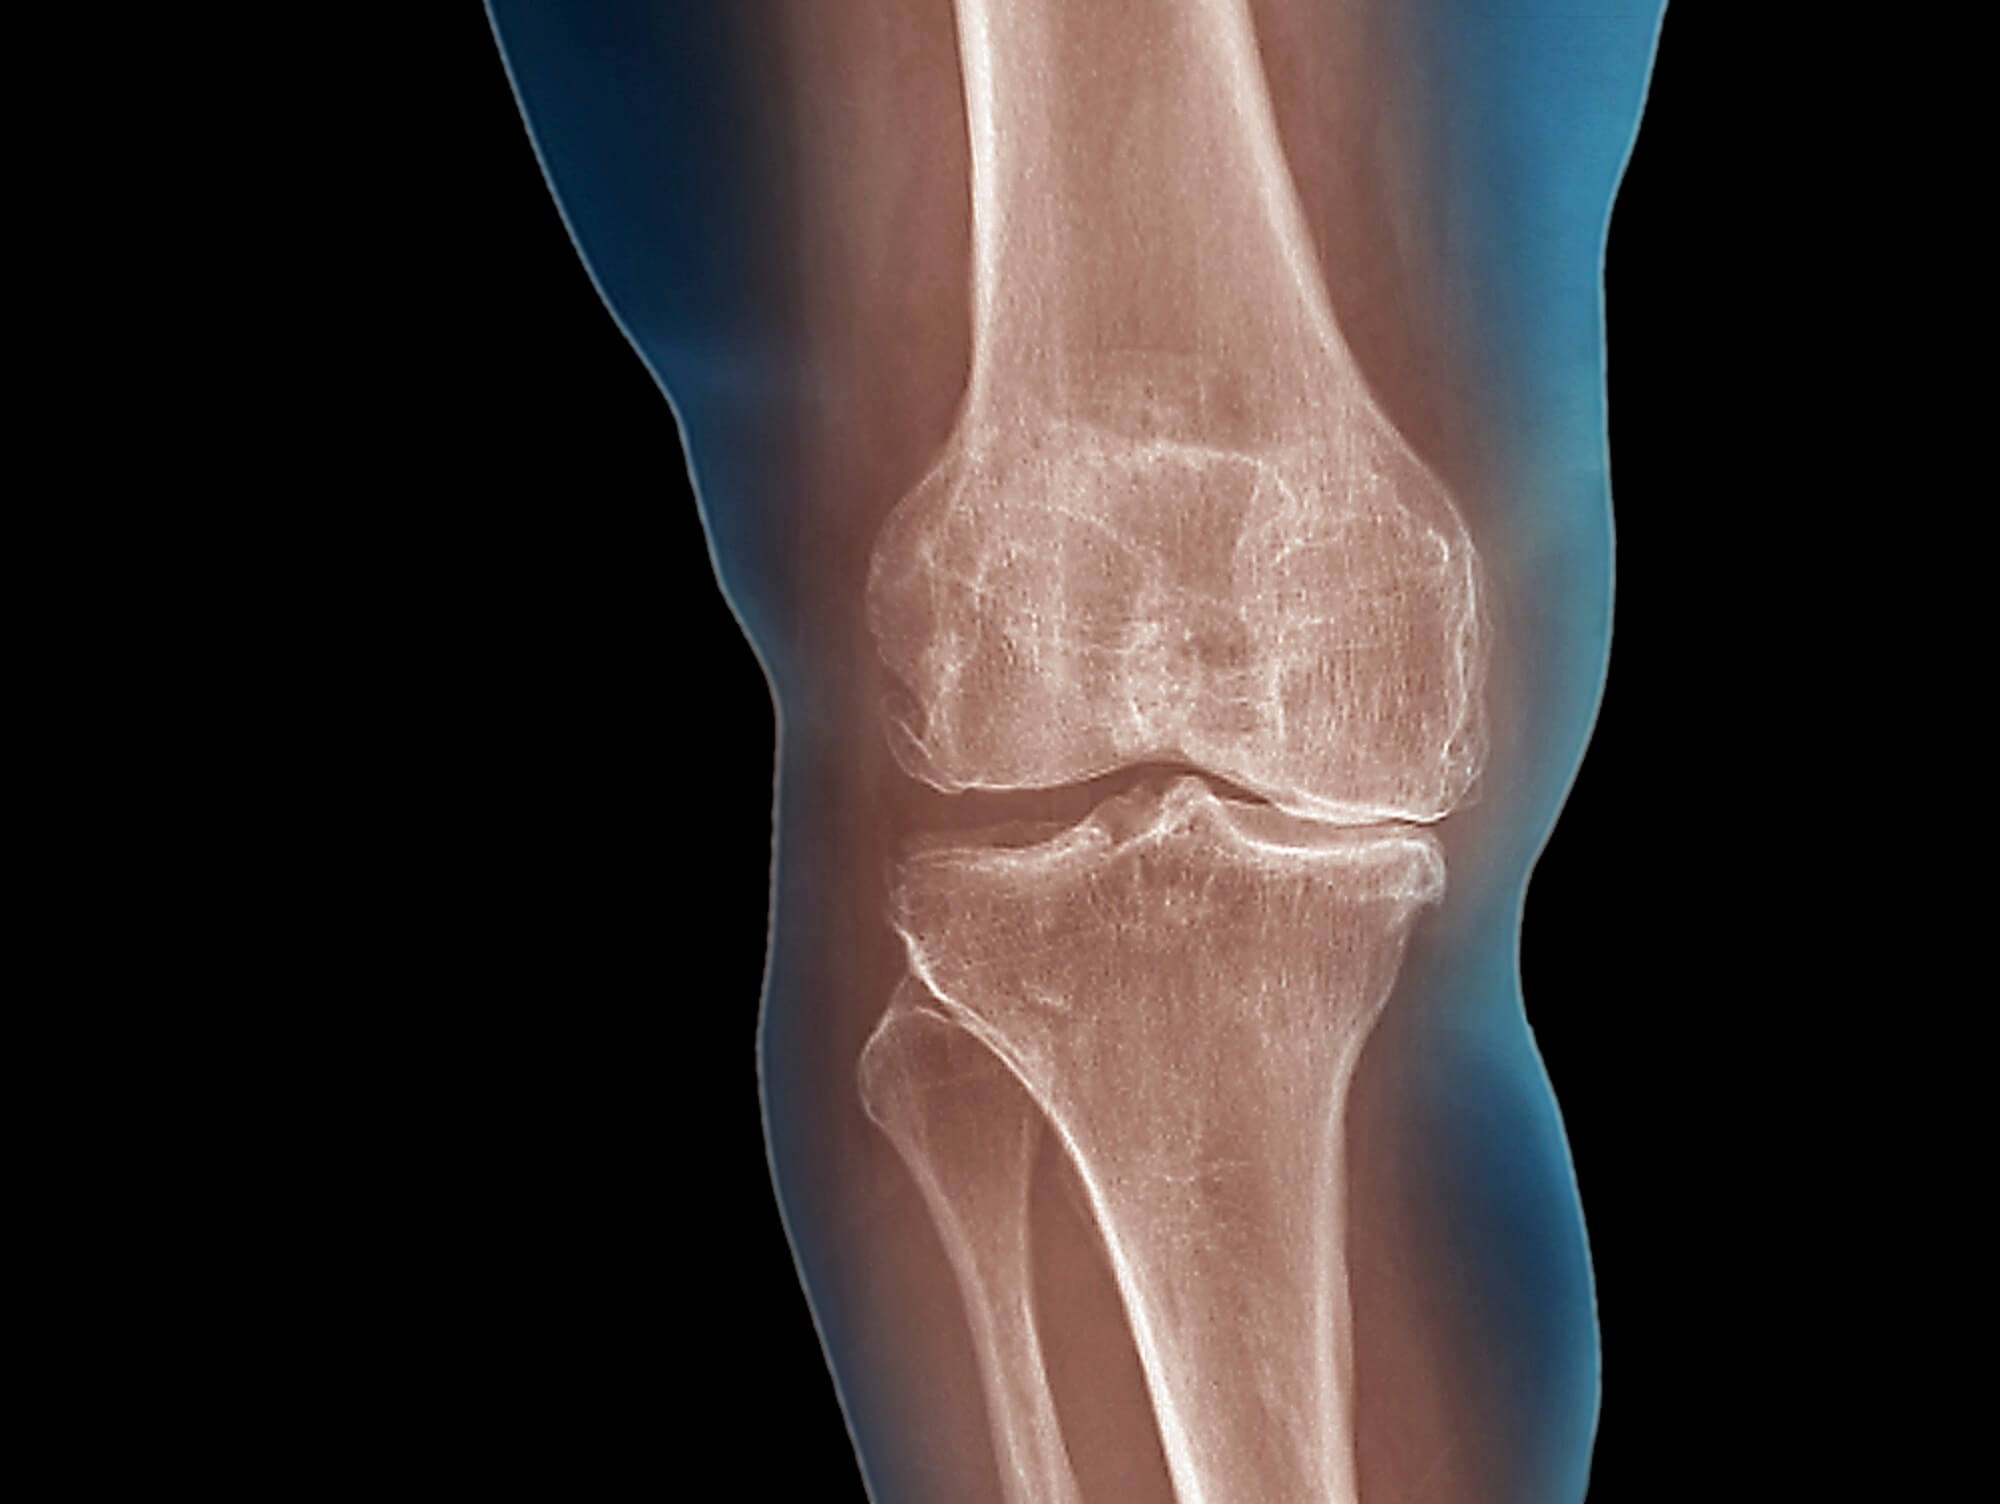 Higher Fibrosis Scores Associated With Lower Radiographic Severity in Knee OA